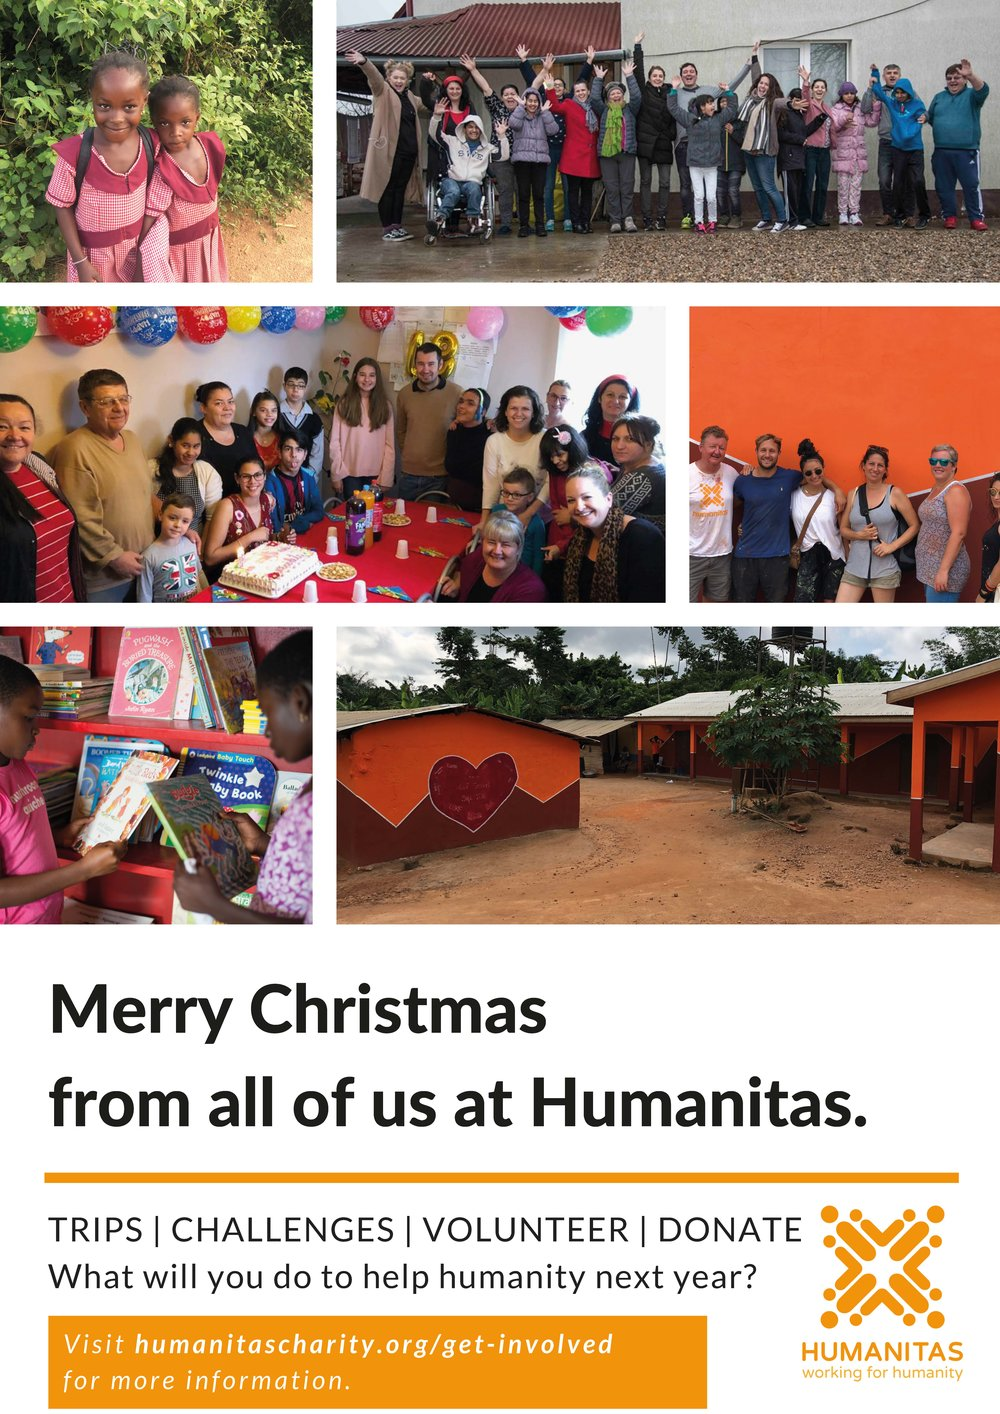 Merry Christmas from all of us at Humanitas.-3.jpg